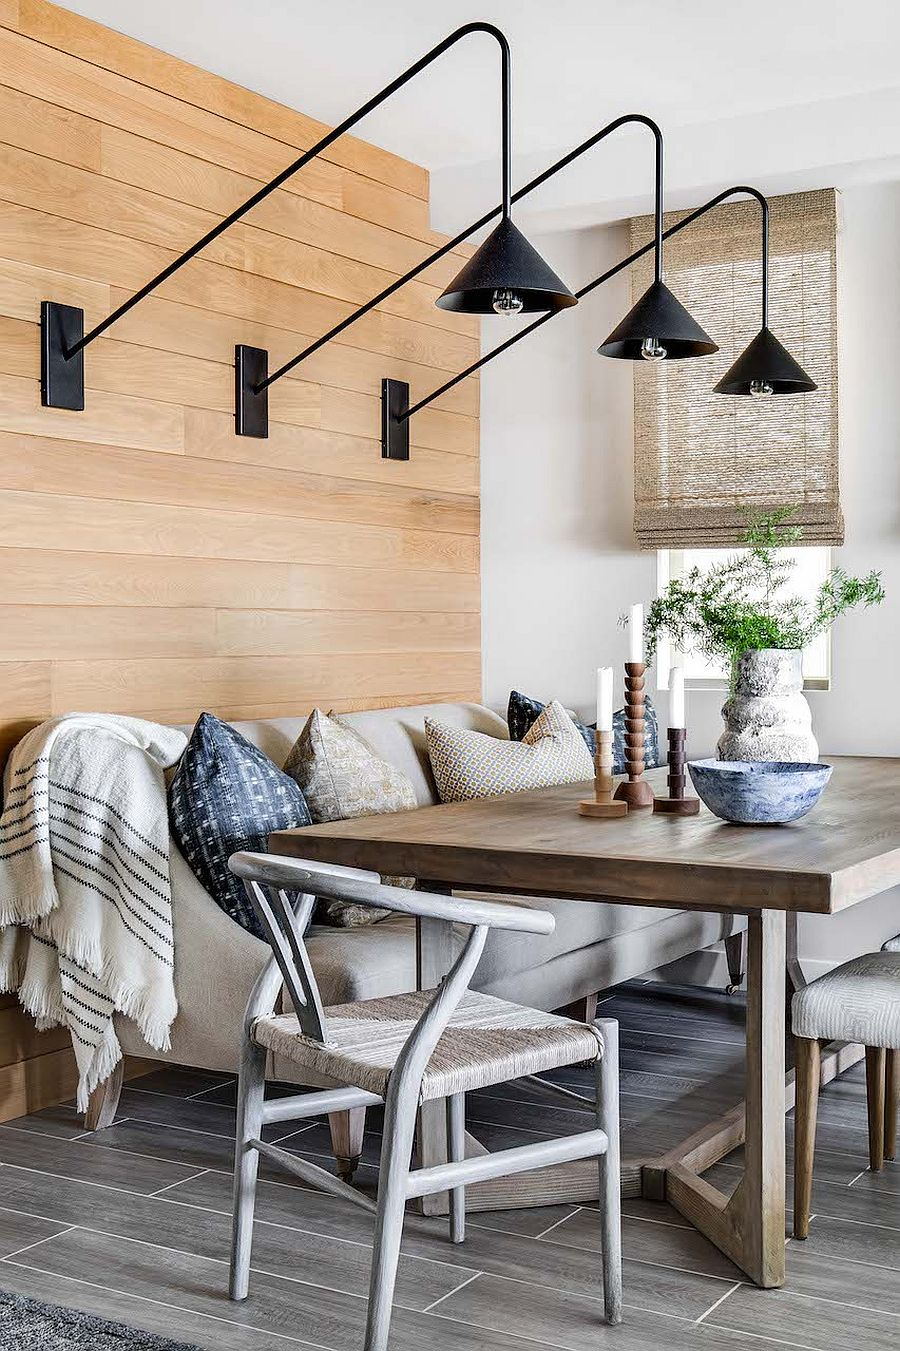 Dark-sconce-lighting-fixtures-for-the-small-beach-style-dining-area-43621